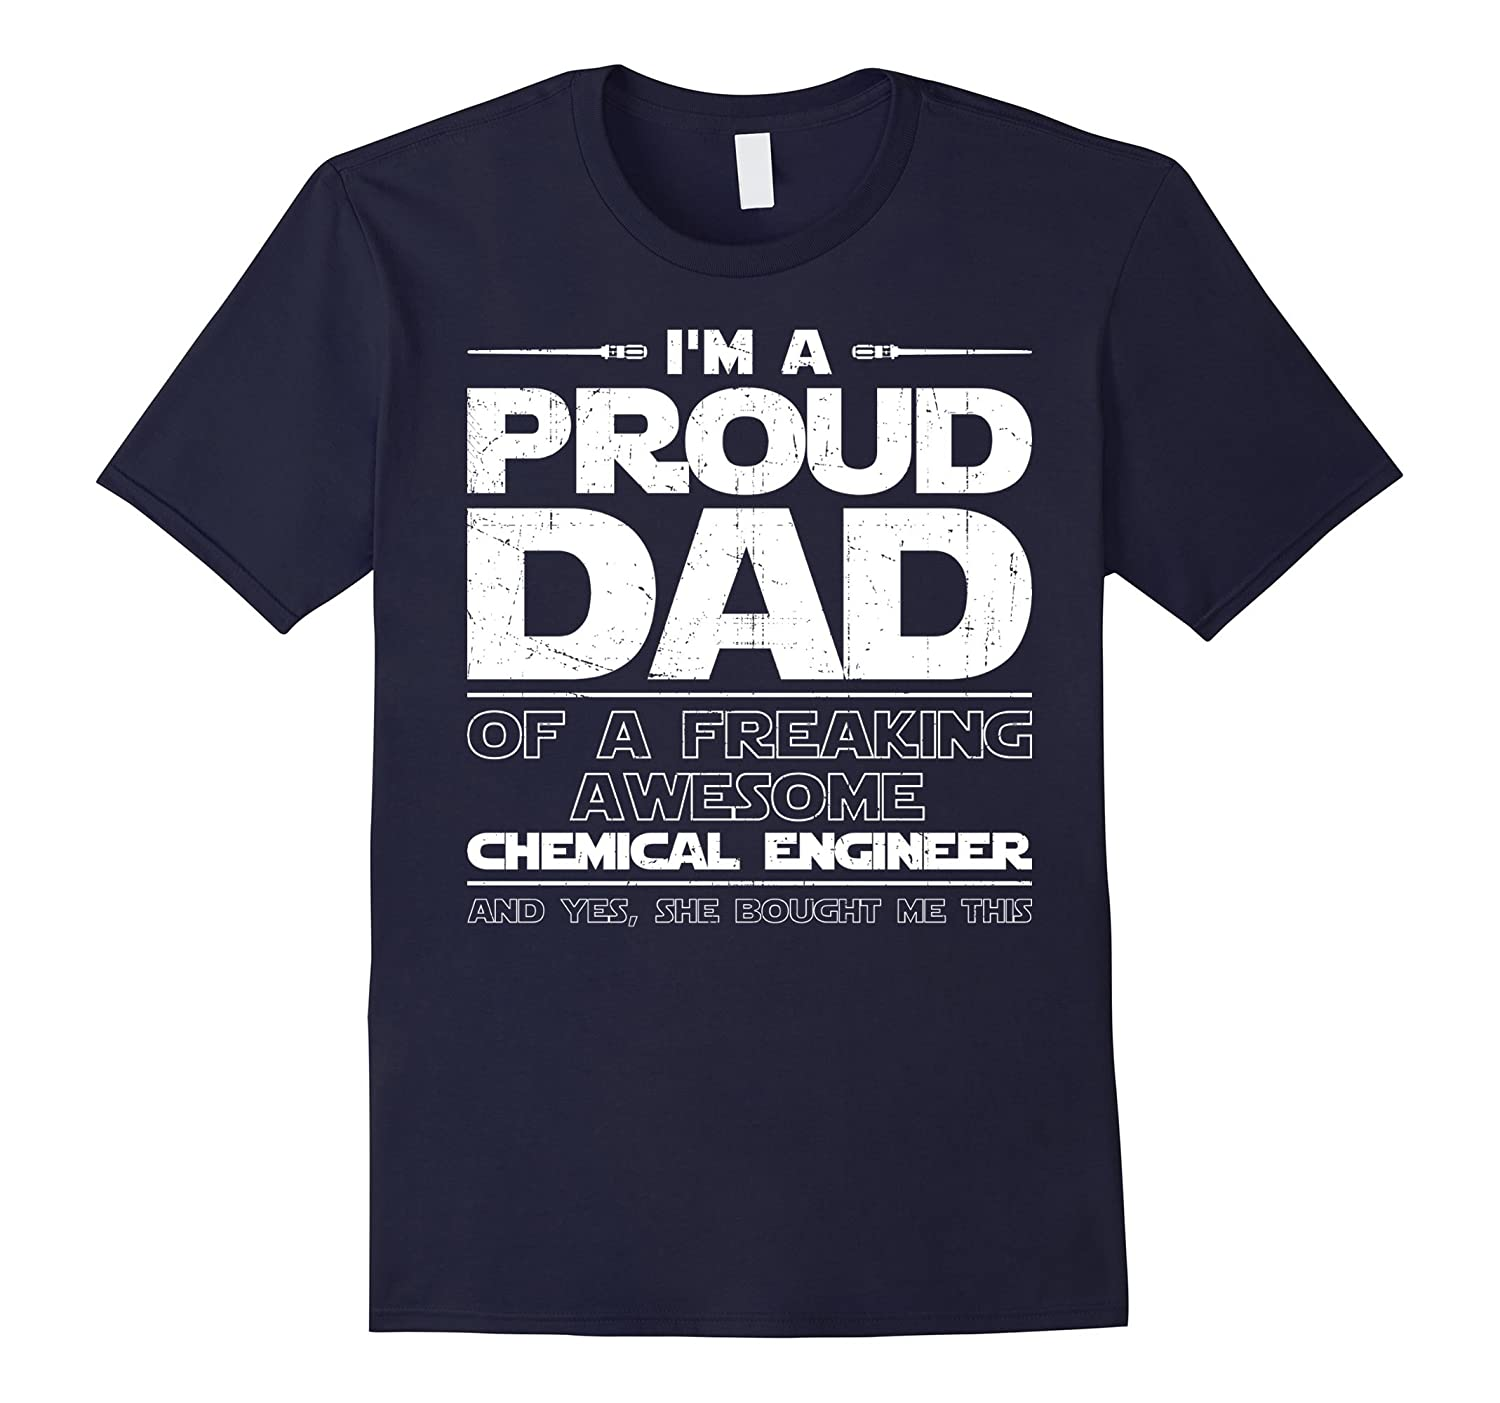 Chemical Engineer Dad T-shirt Gift For Chemical Engineer-Vaci